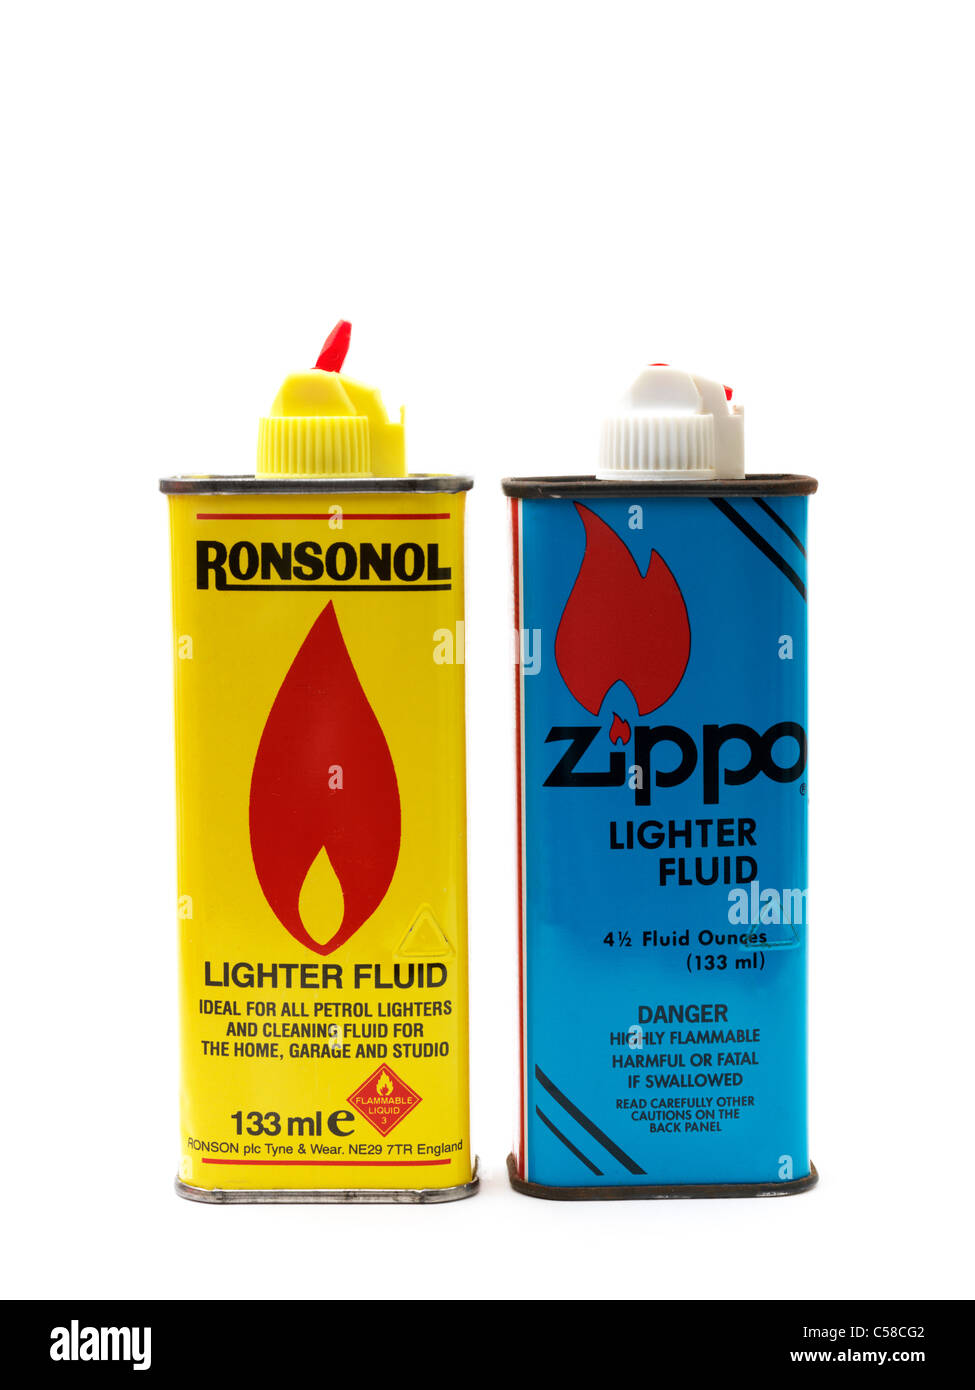 Cans Of Lighter Fluid Ronsonol And Zippo - Stock Image